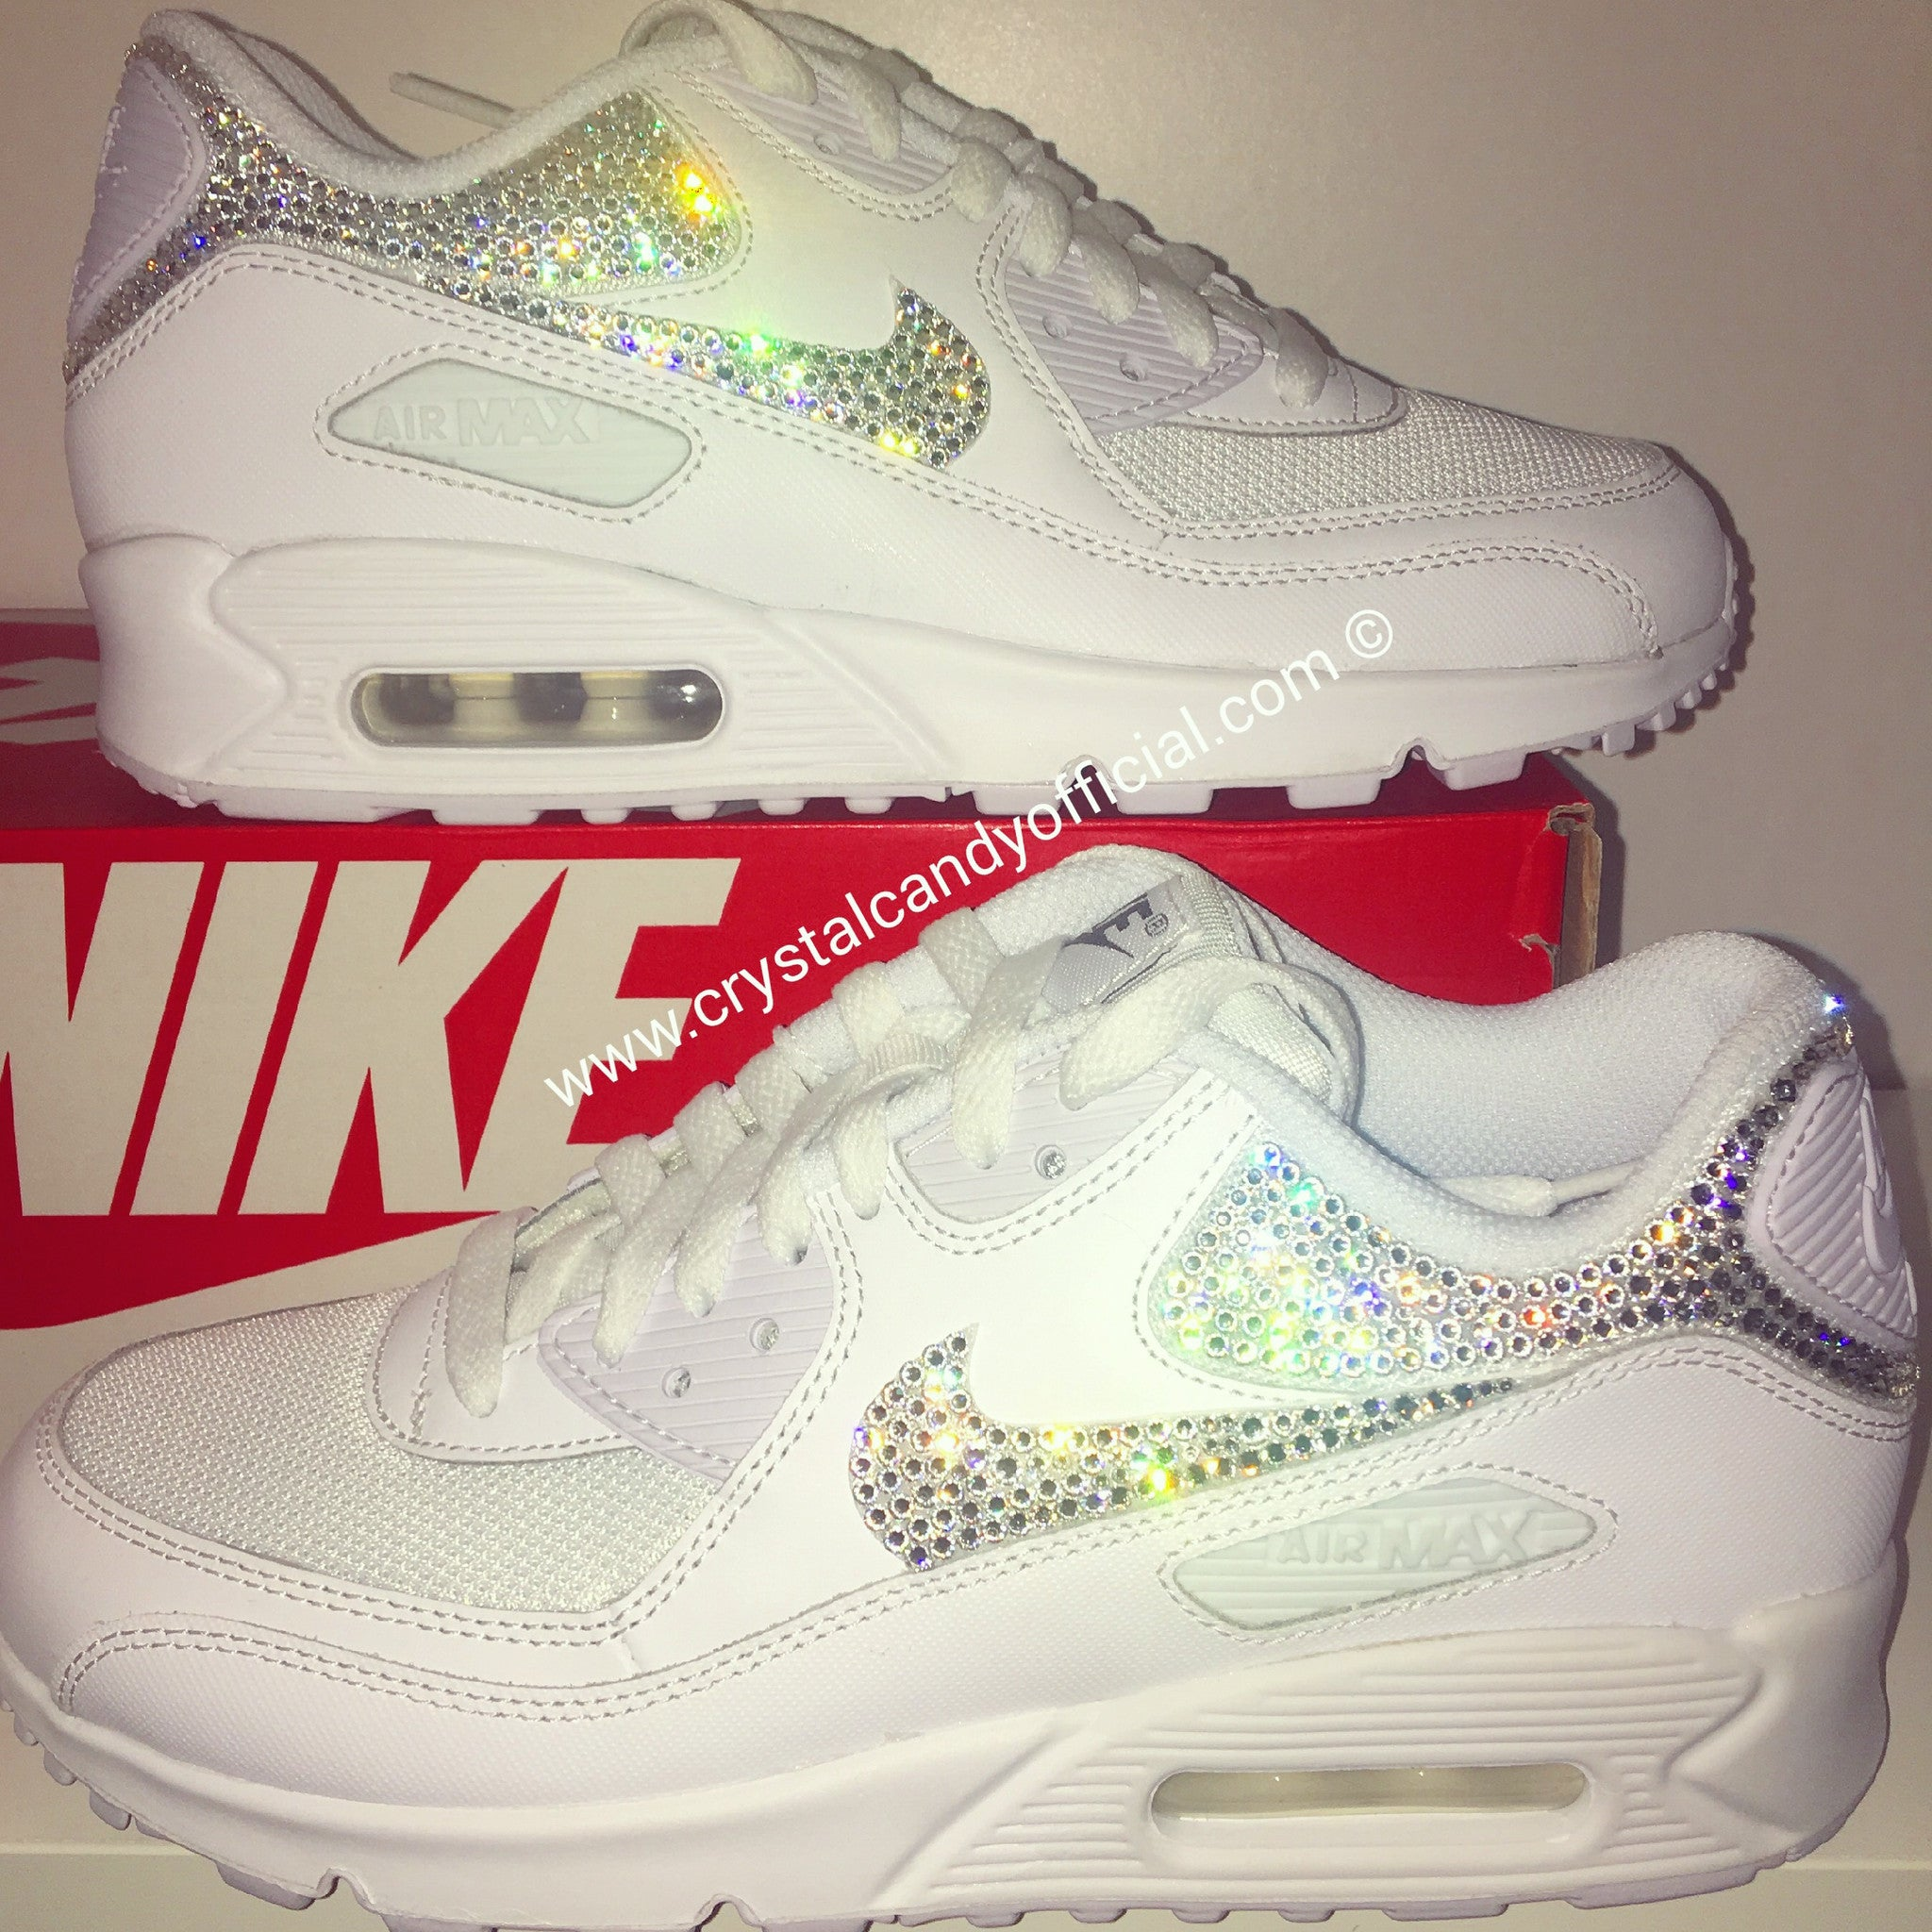 c708c75f9909 Crystal Nike Air Max 90 s in White (fully crystallised) - Crystal ...